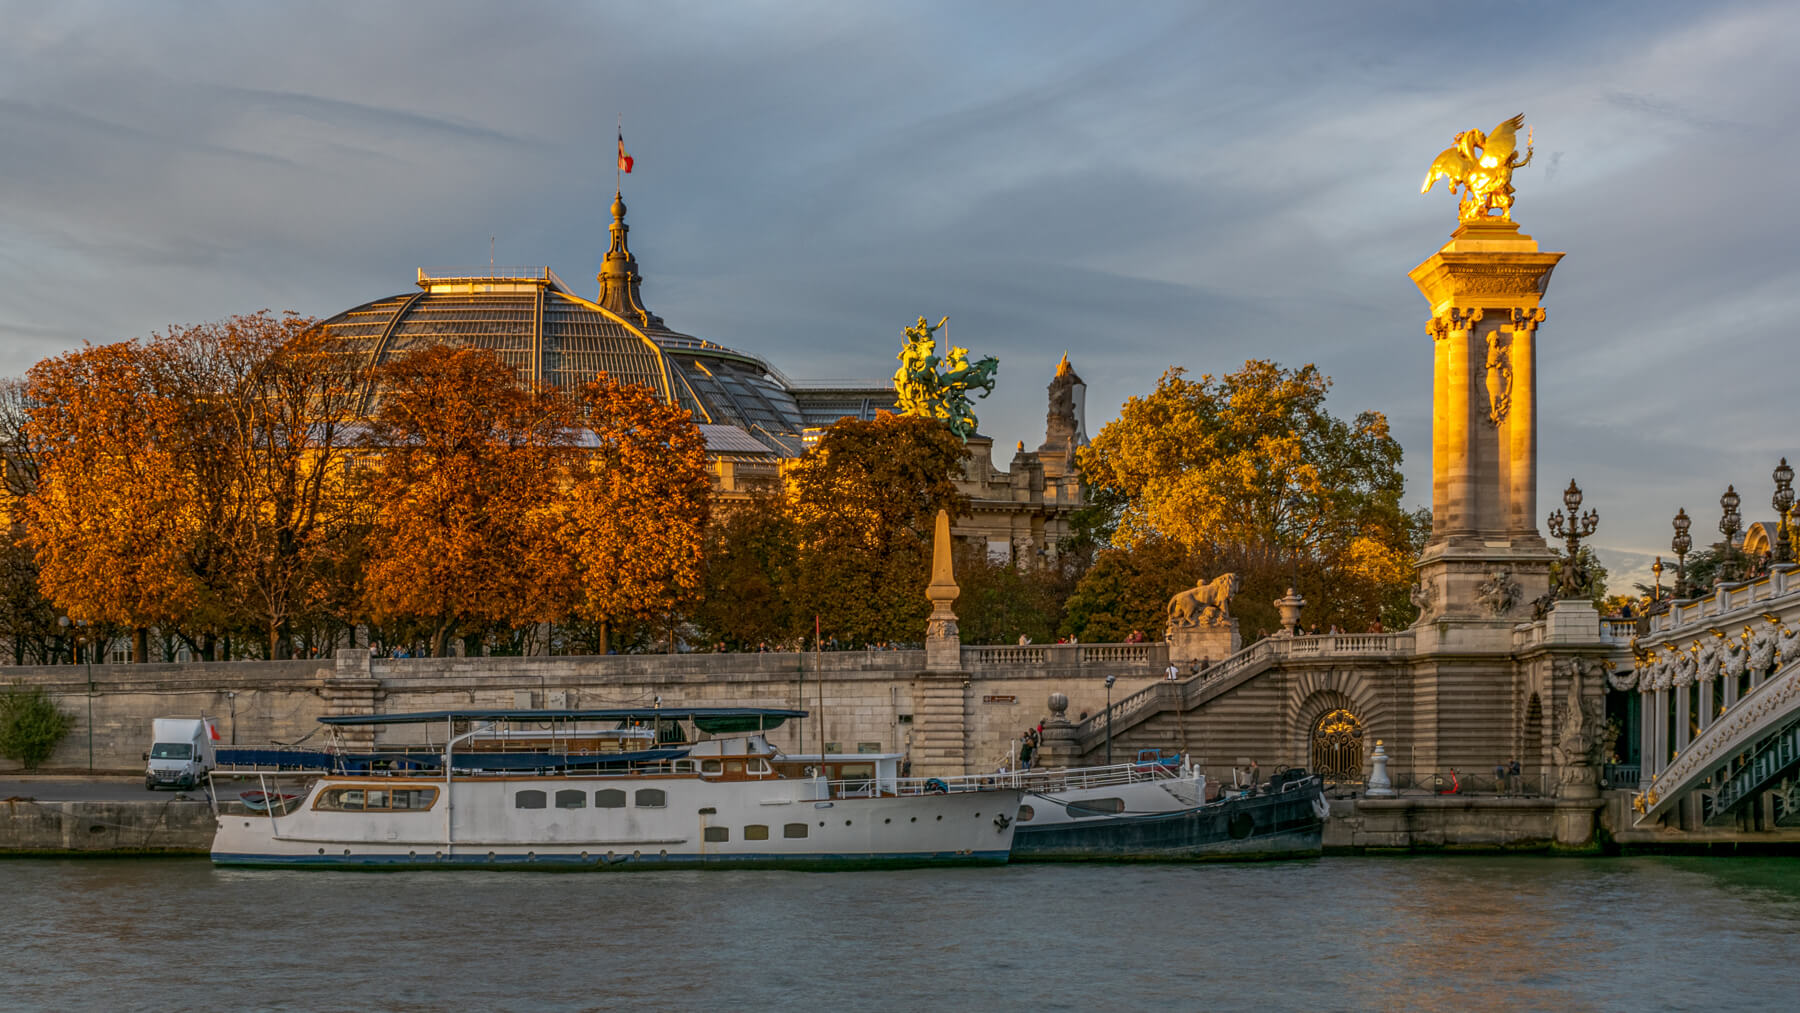 Grand Palais and Pont Alexandre III at sunset, France